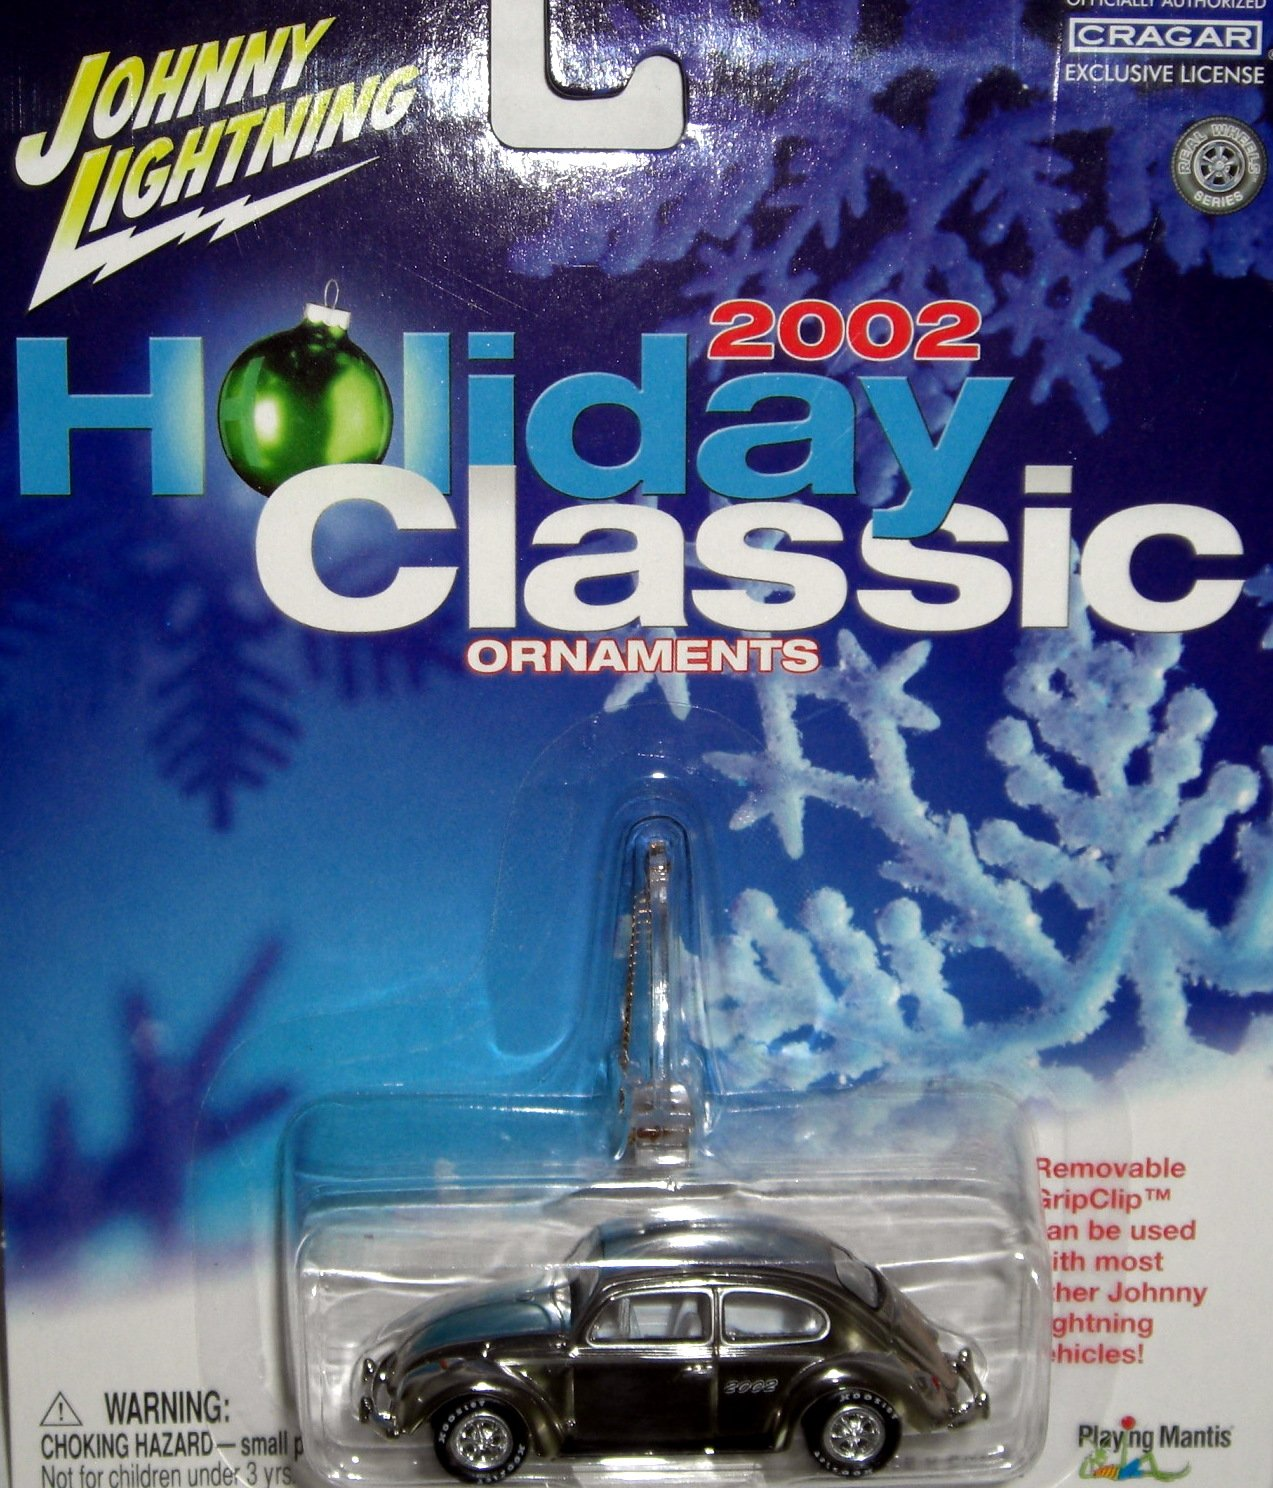 Johnny Lightning 2002 Holiday Classic Ornaments 66 VW Beetle CHROME Playing Mantis